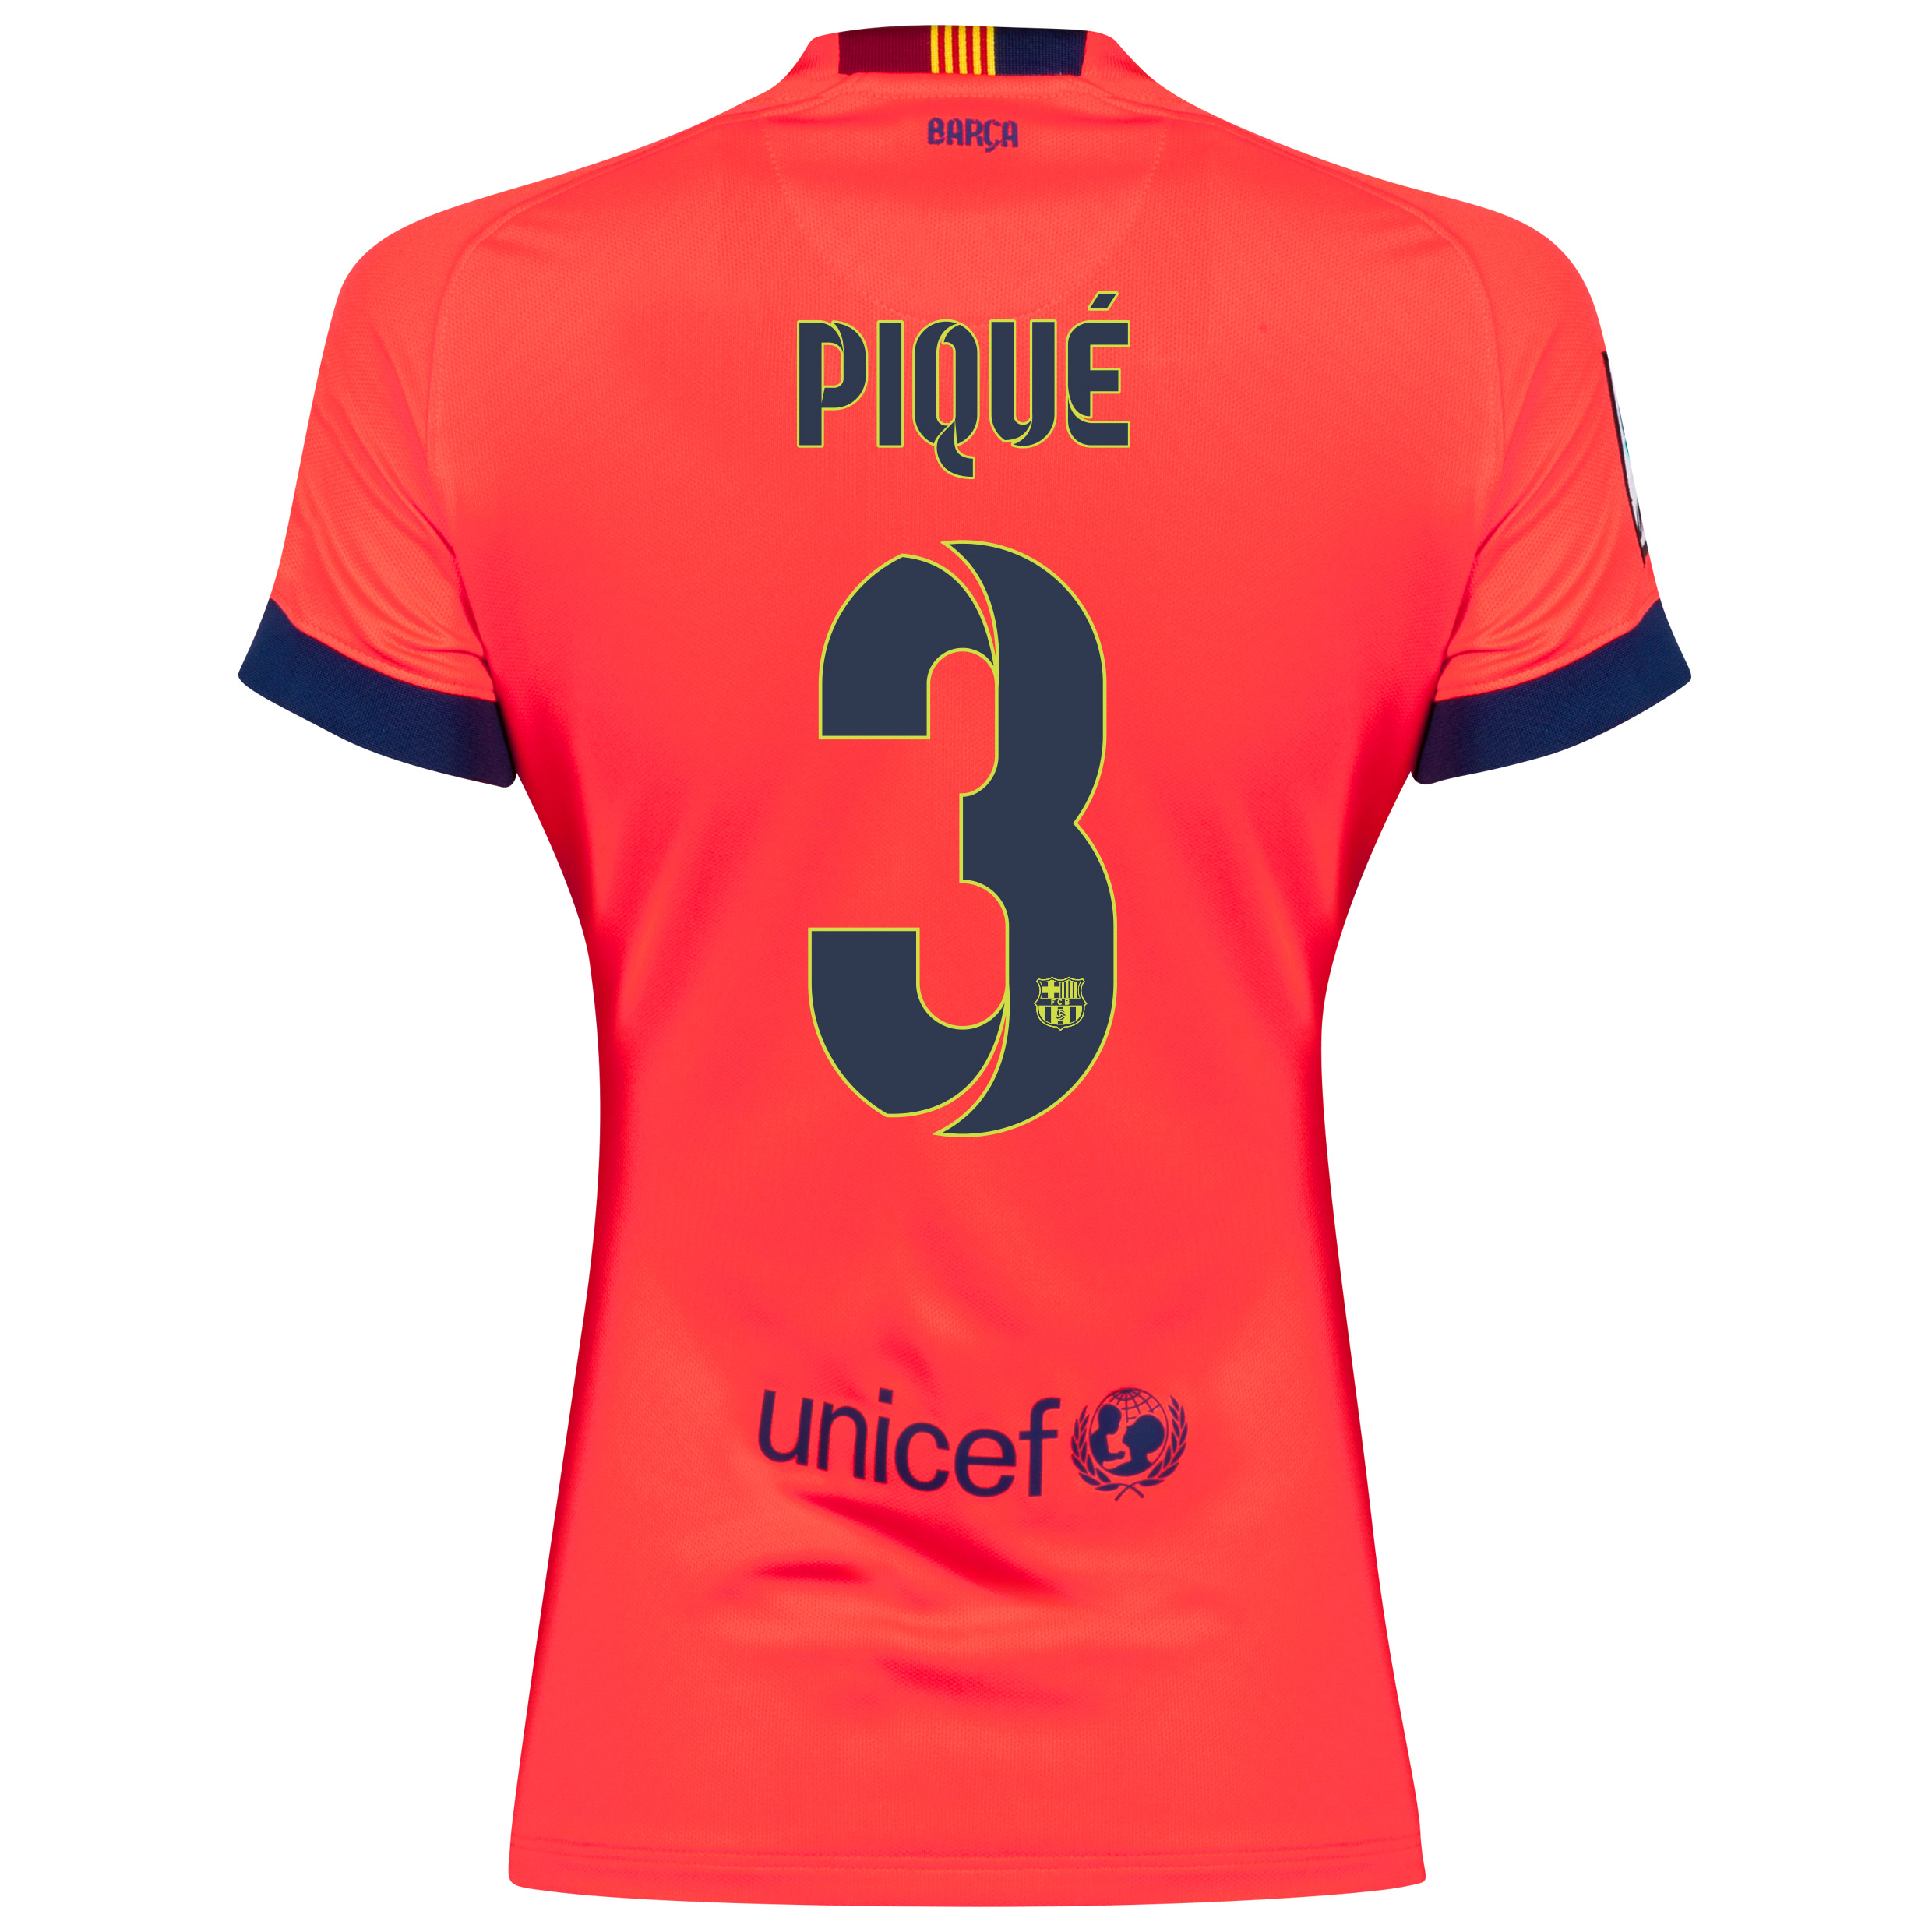 Barcelona Away Shirt 2014/15 - Womens Red with Pique 3 printing